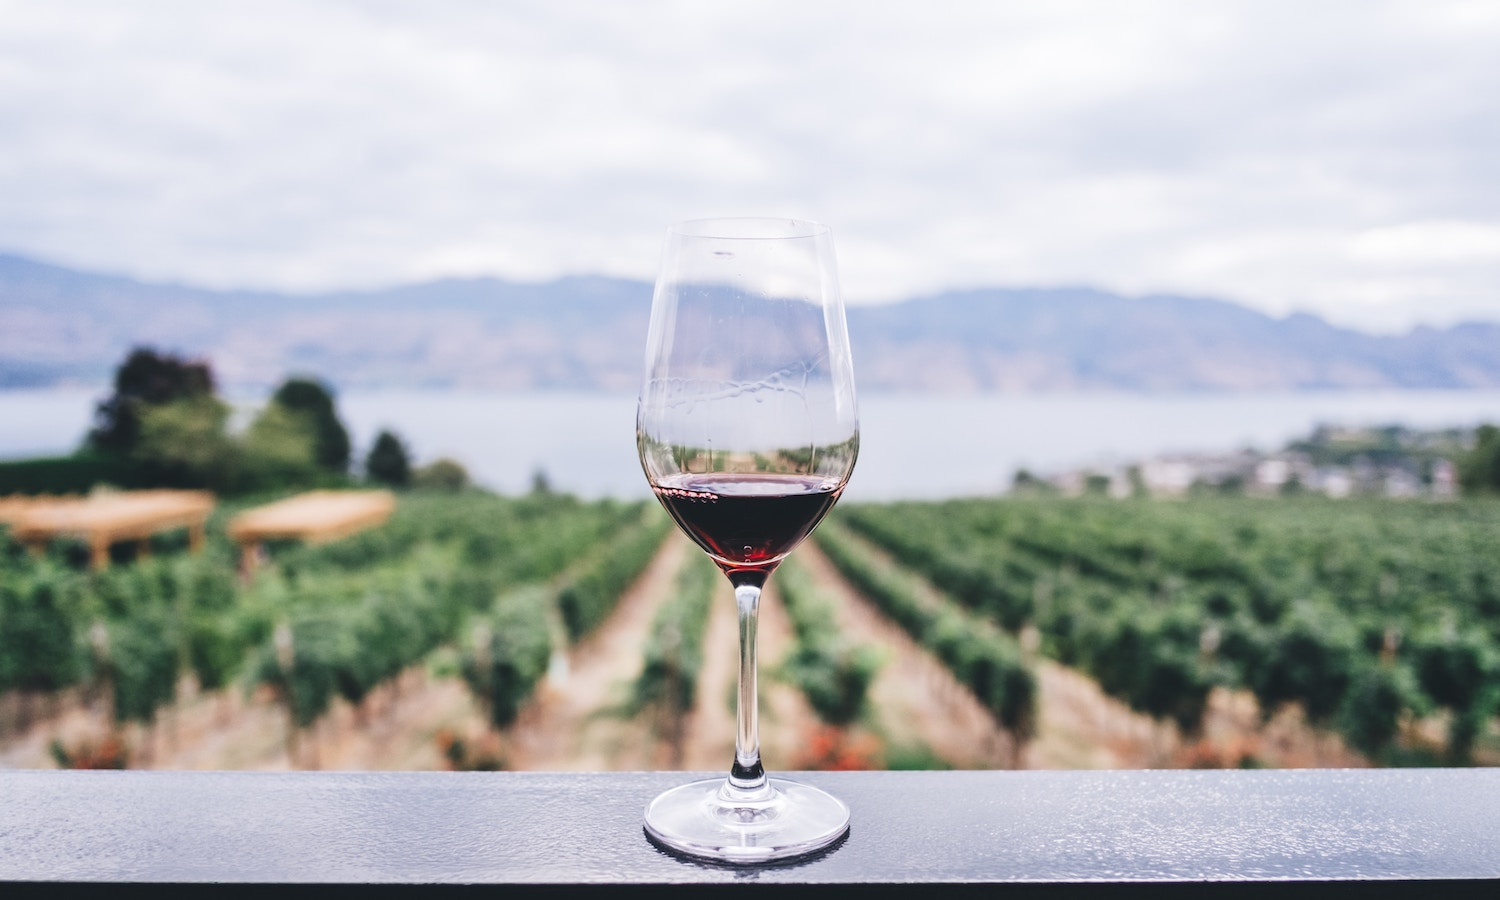 Breweries, distilleries, and wineries are using both traditional and technological methods to produce their unique beverages—and protect the planet.